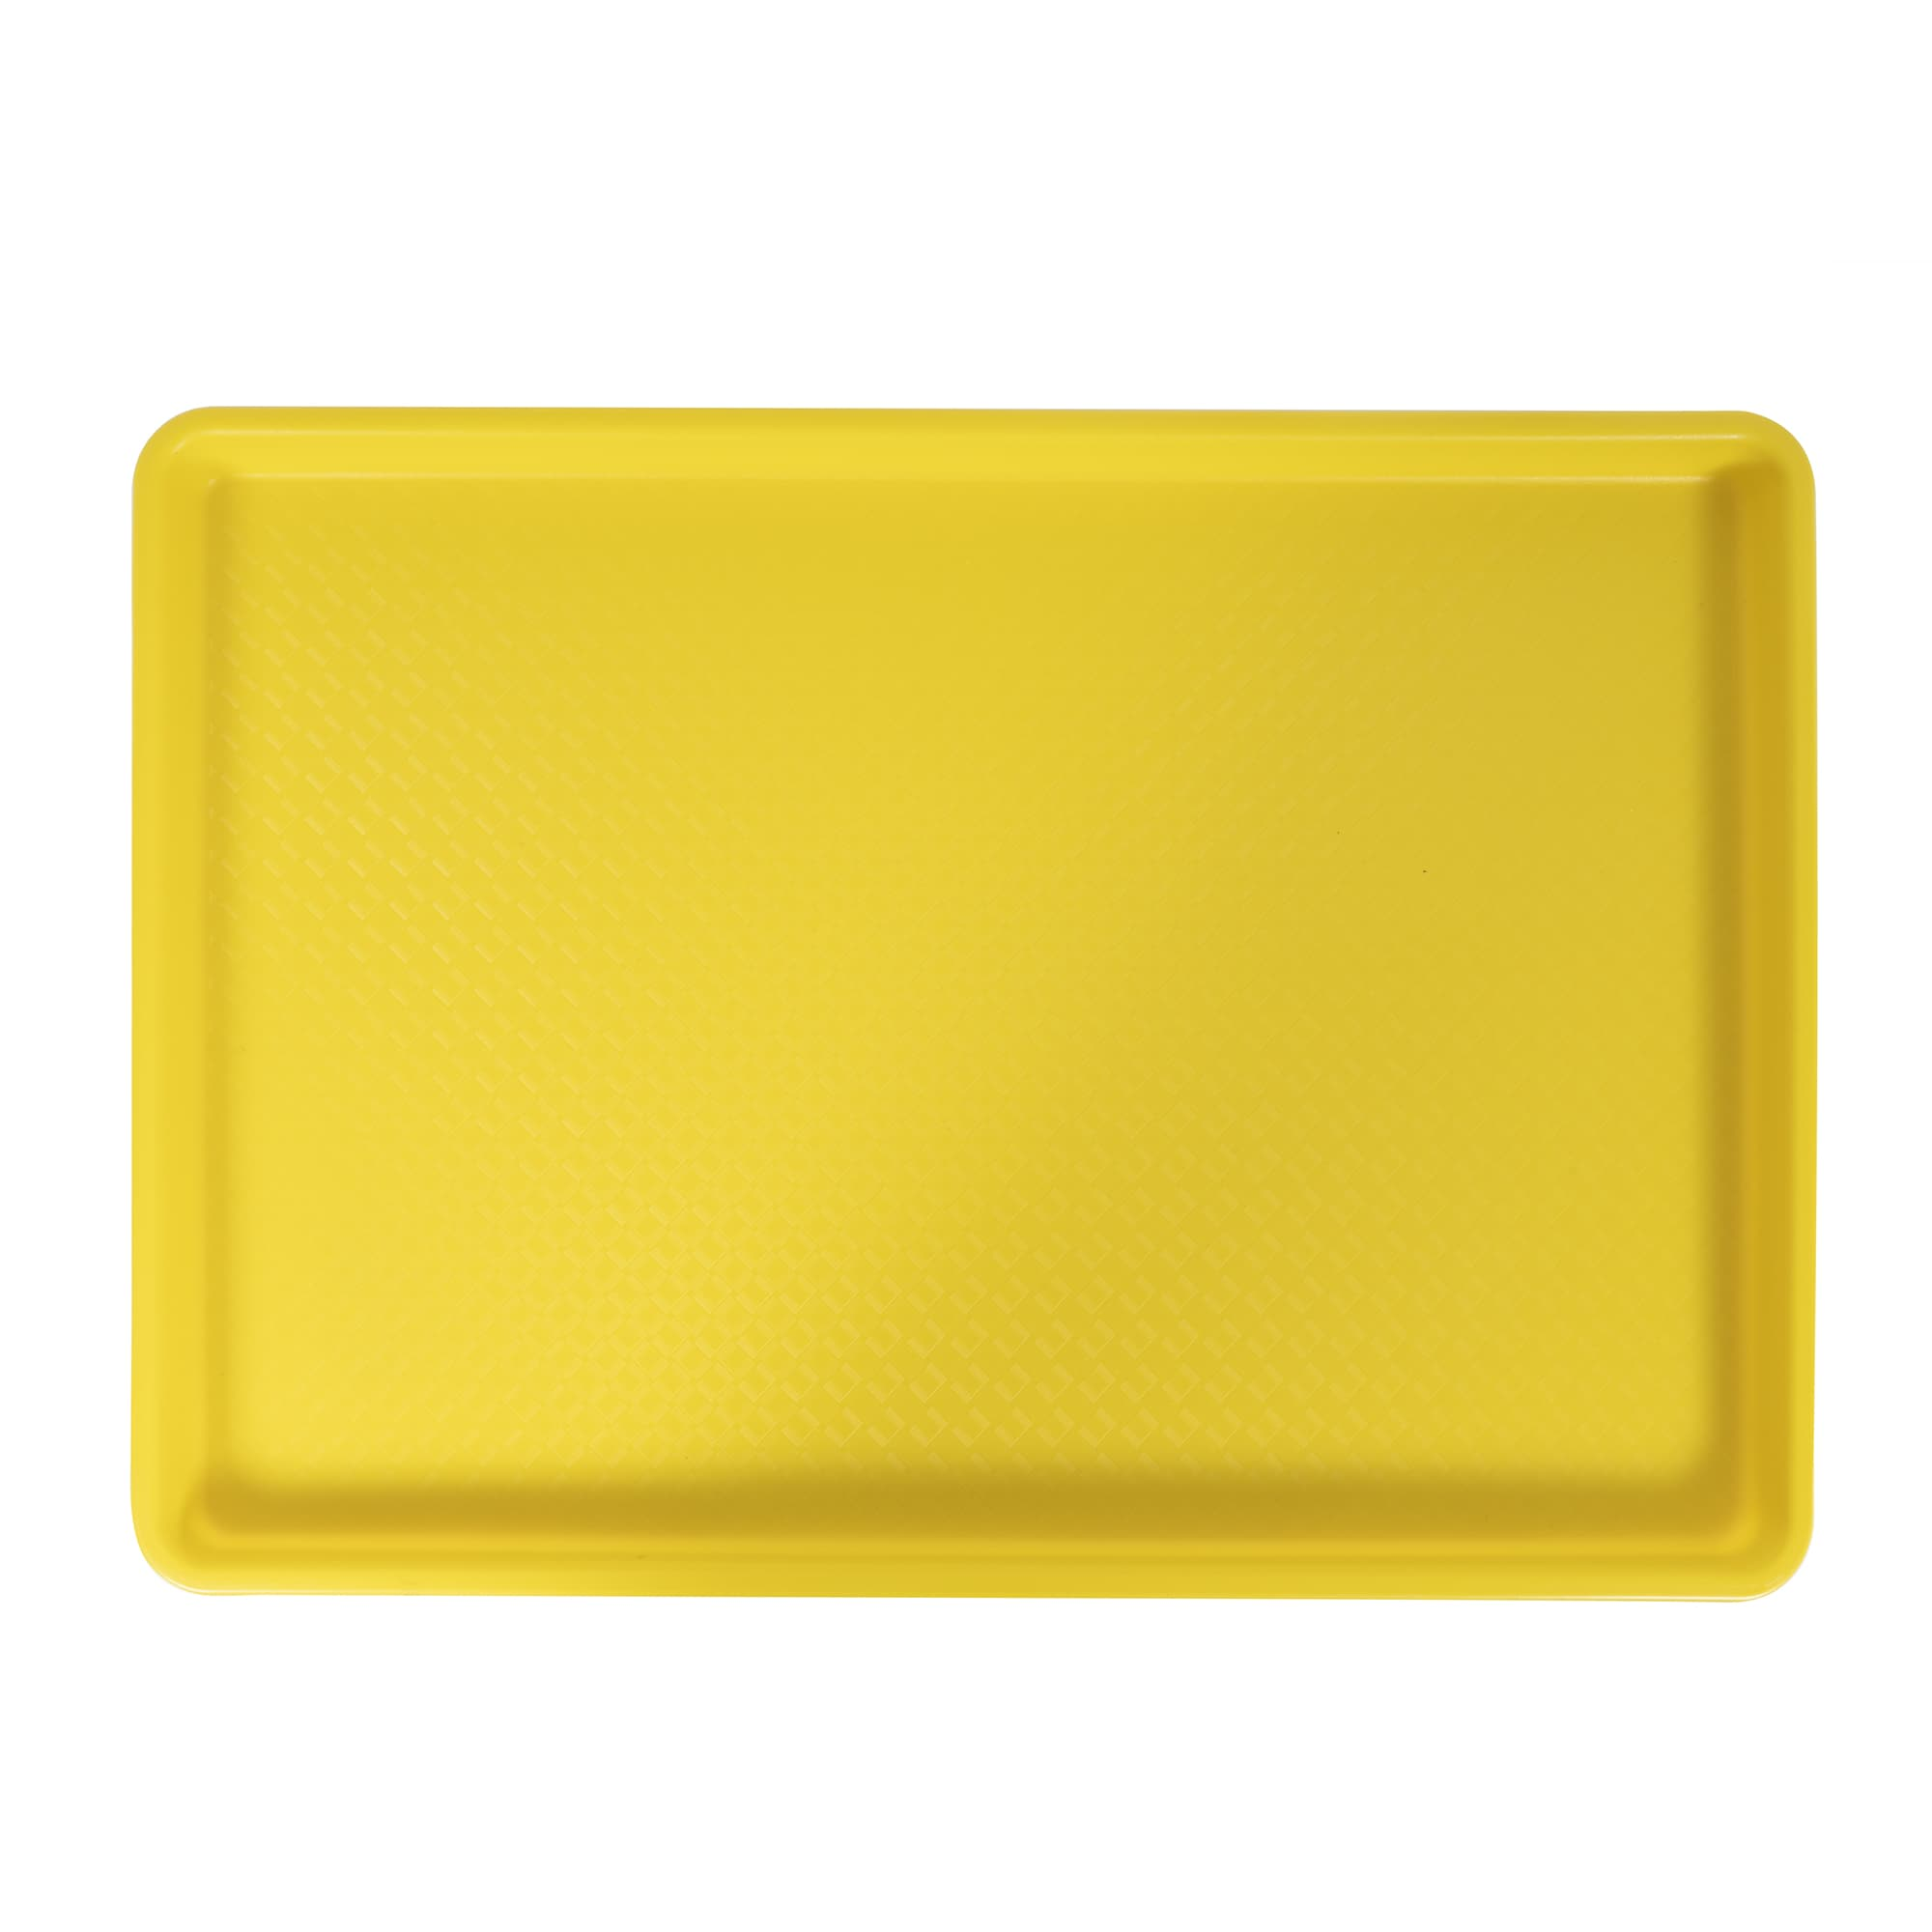 "Winco FFT-1826YL Fast Food Tray, 18 x 26"", Yellow"